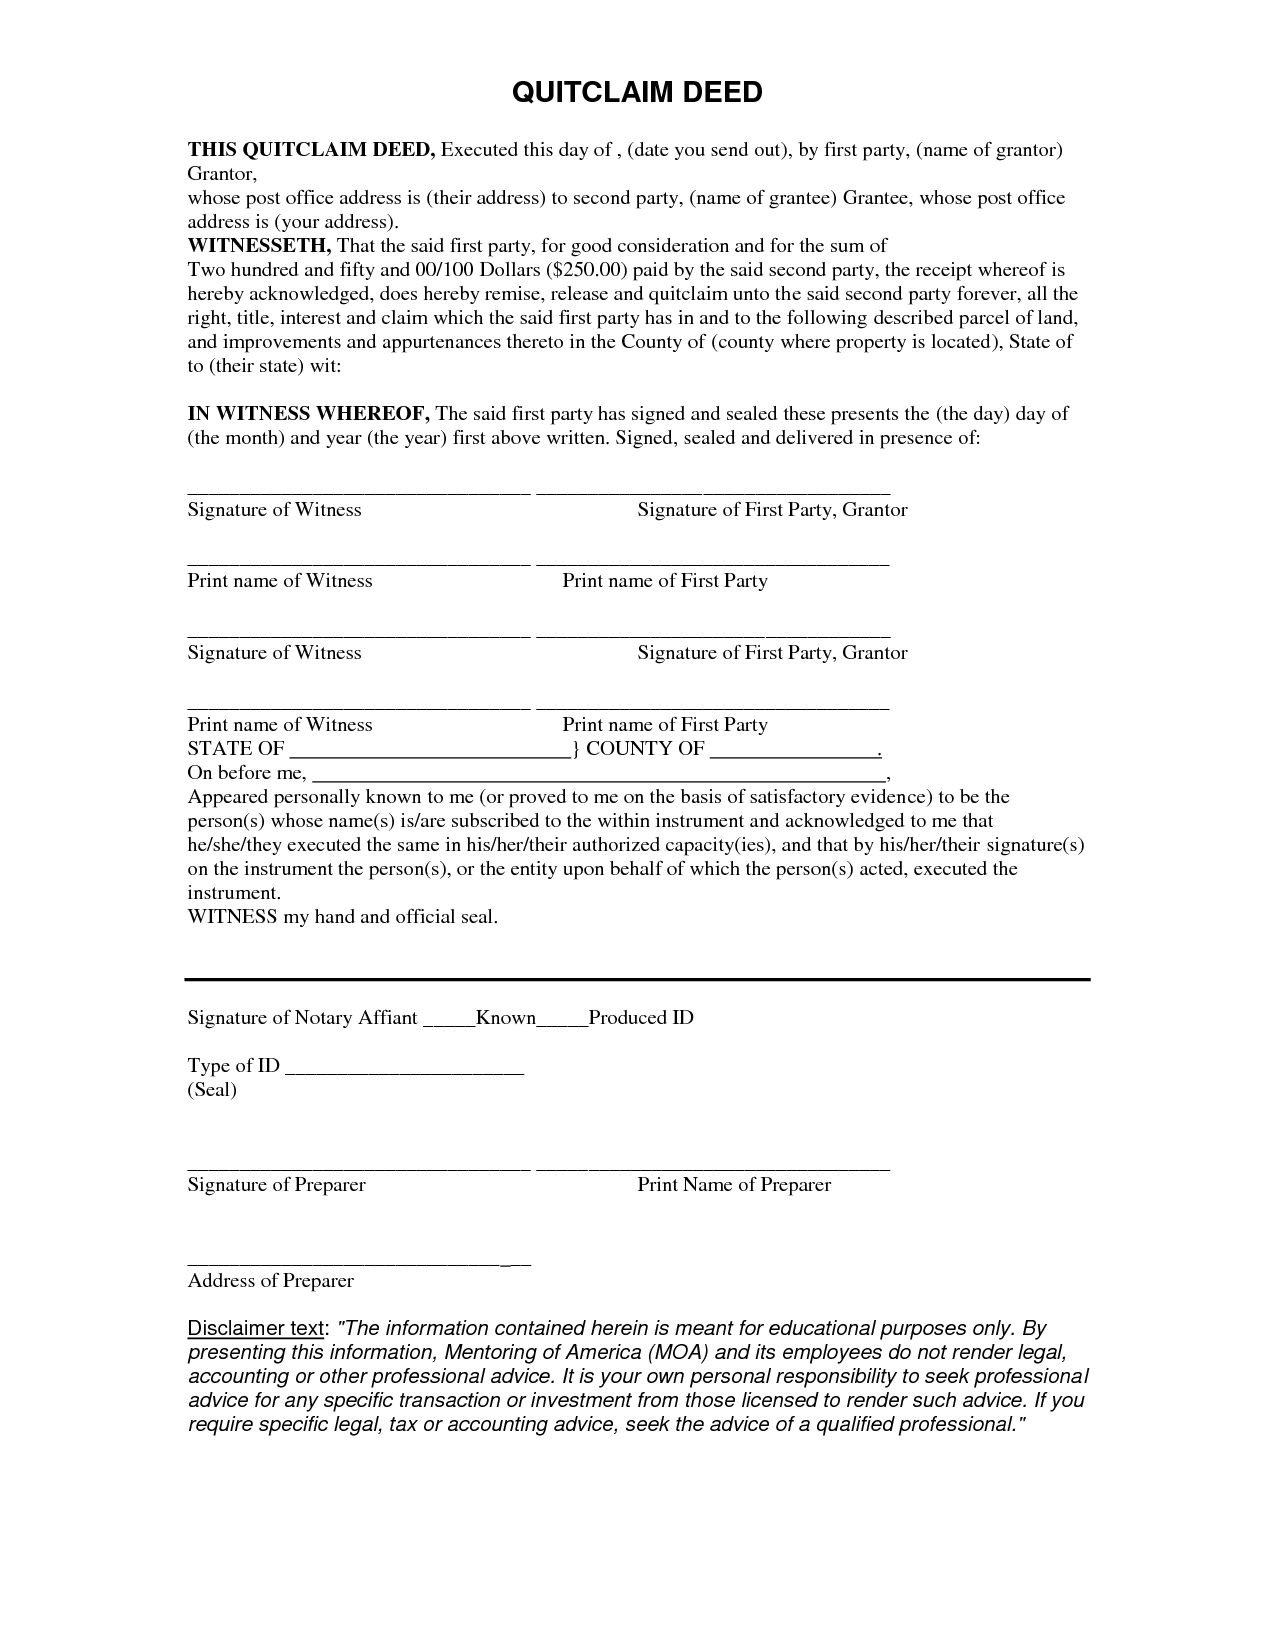 Free Quit Claim Deed Form - Quit Form | Real State | Legal Forms - Free Printable Quit Claim Deed Form